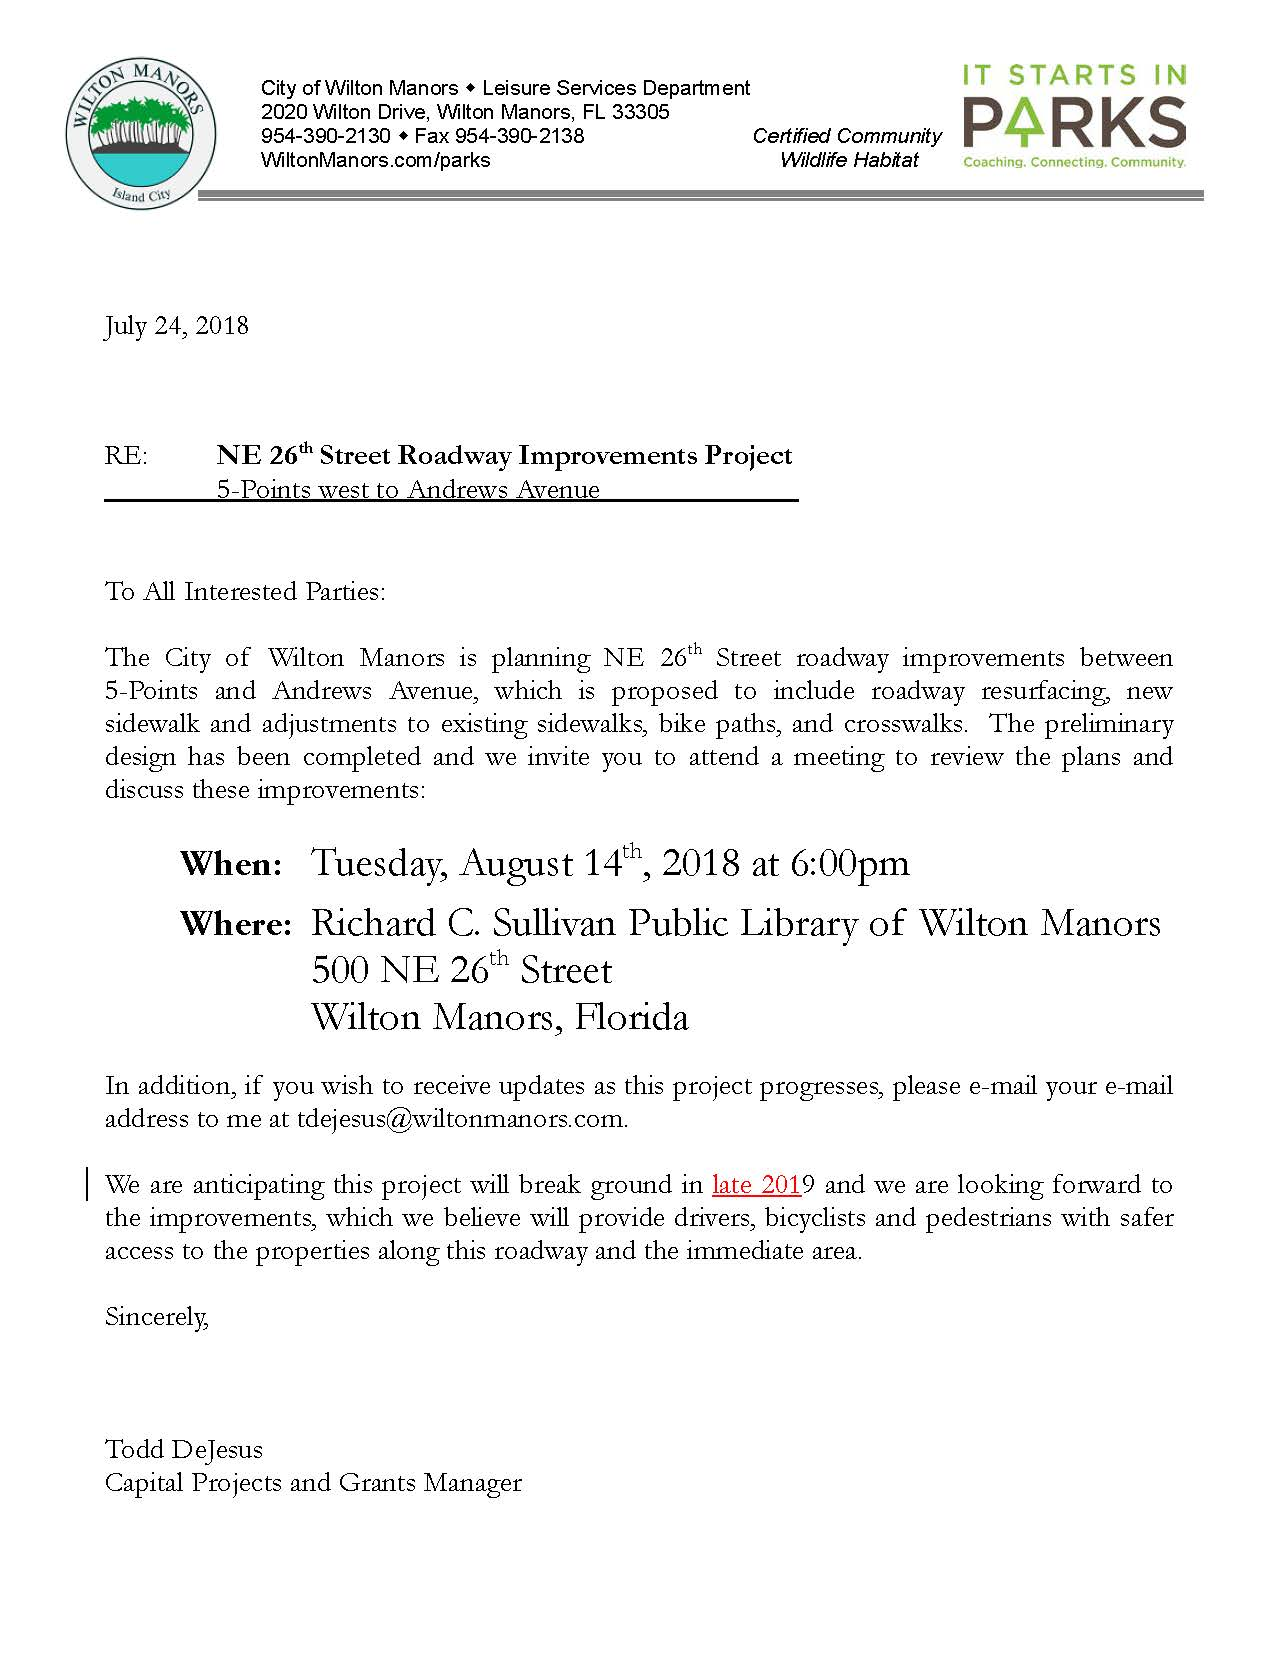 Flyer for public meeting (Aug 14 2018).docx